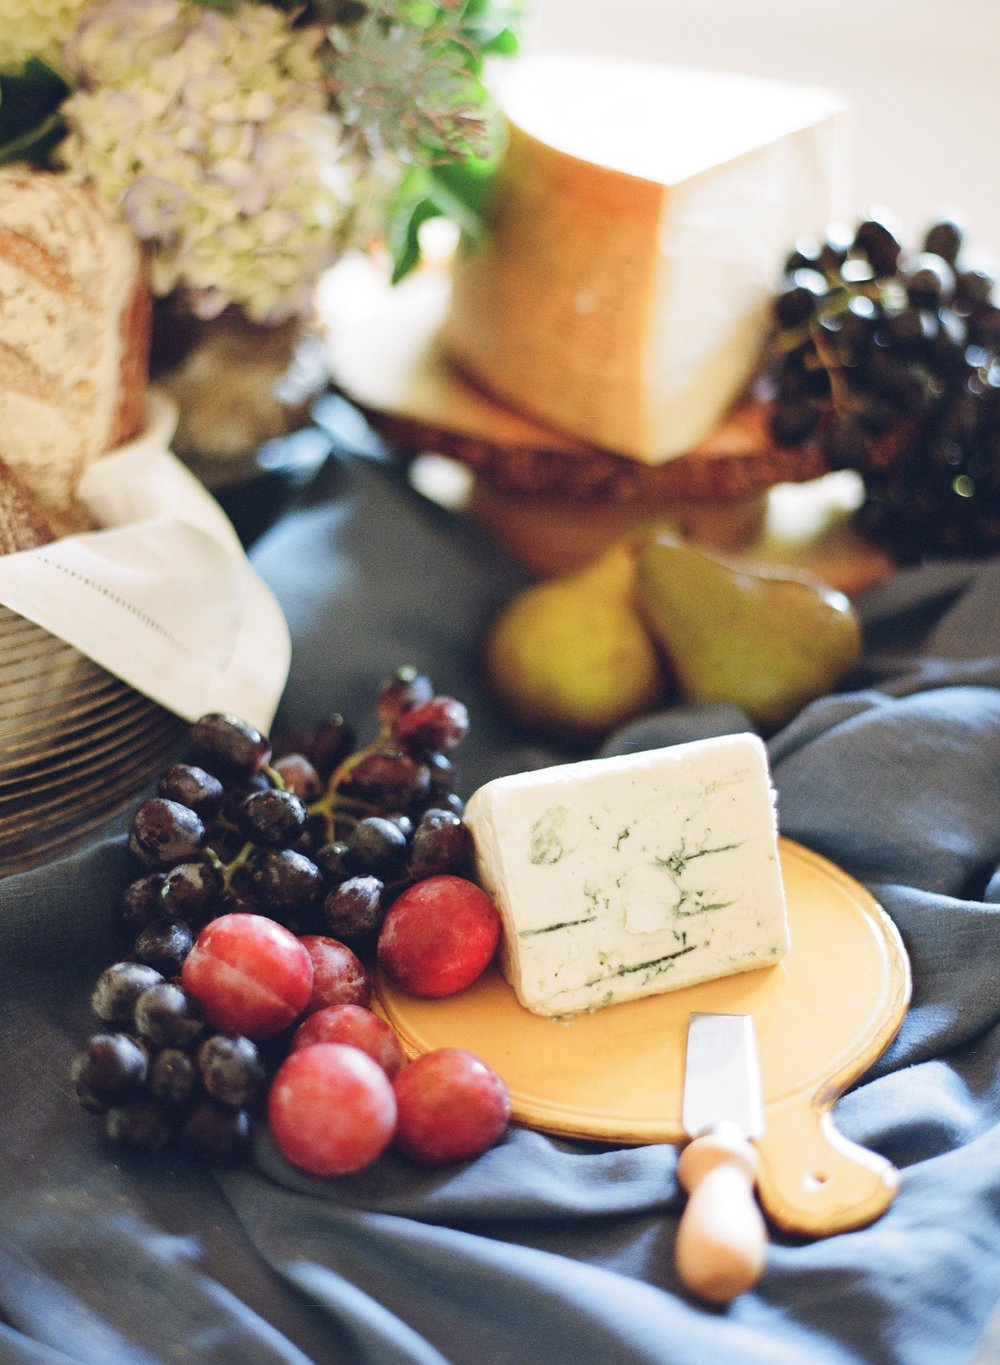 santabarbarawedding.com | Feast & Fest Catering | Cheese Display | Jose Villa